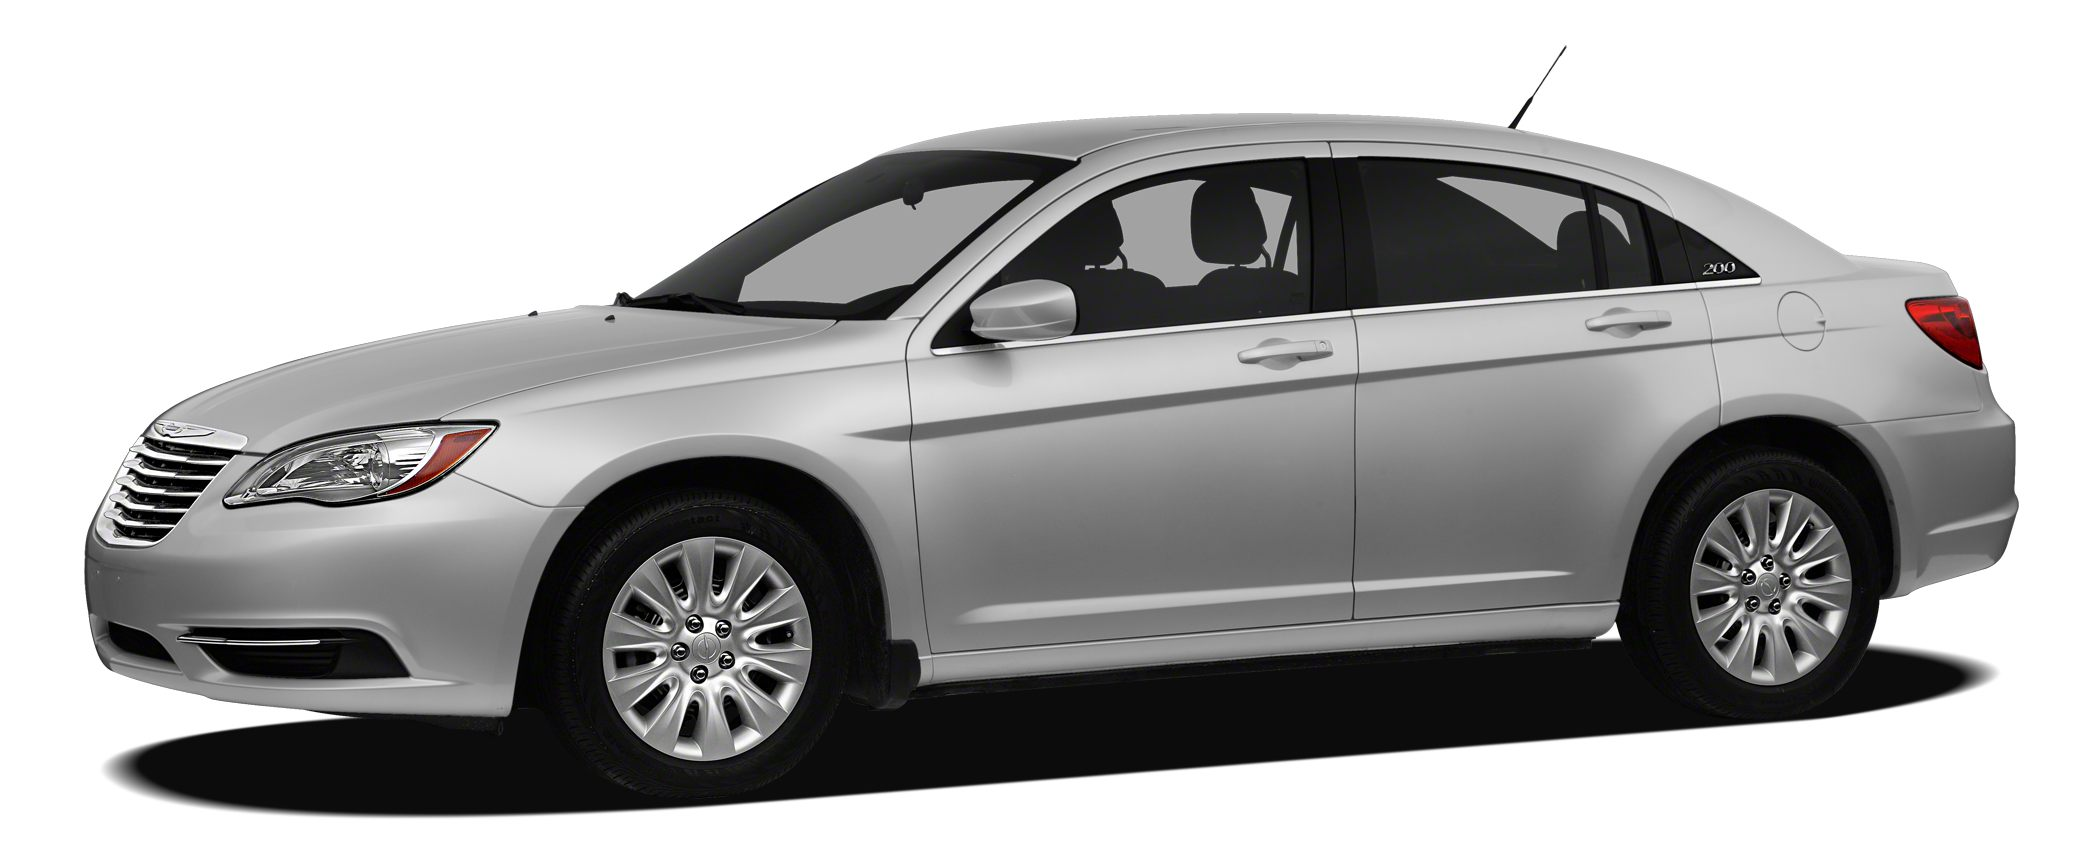 2012 Chrysler 200 Limited FUEL EFFICIENT 31 MPG Hwy20 MPG City Limited trim Heated Leather Seat